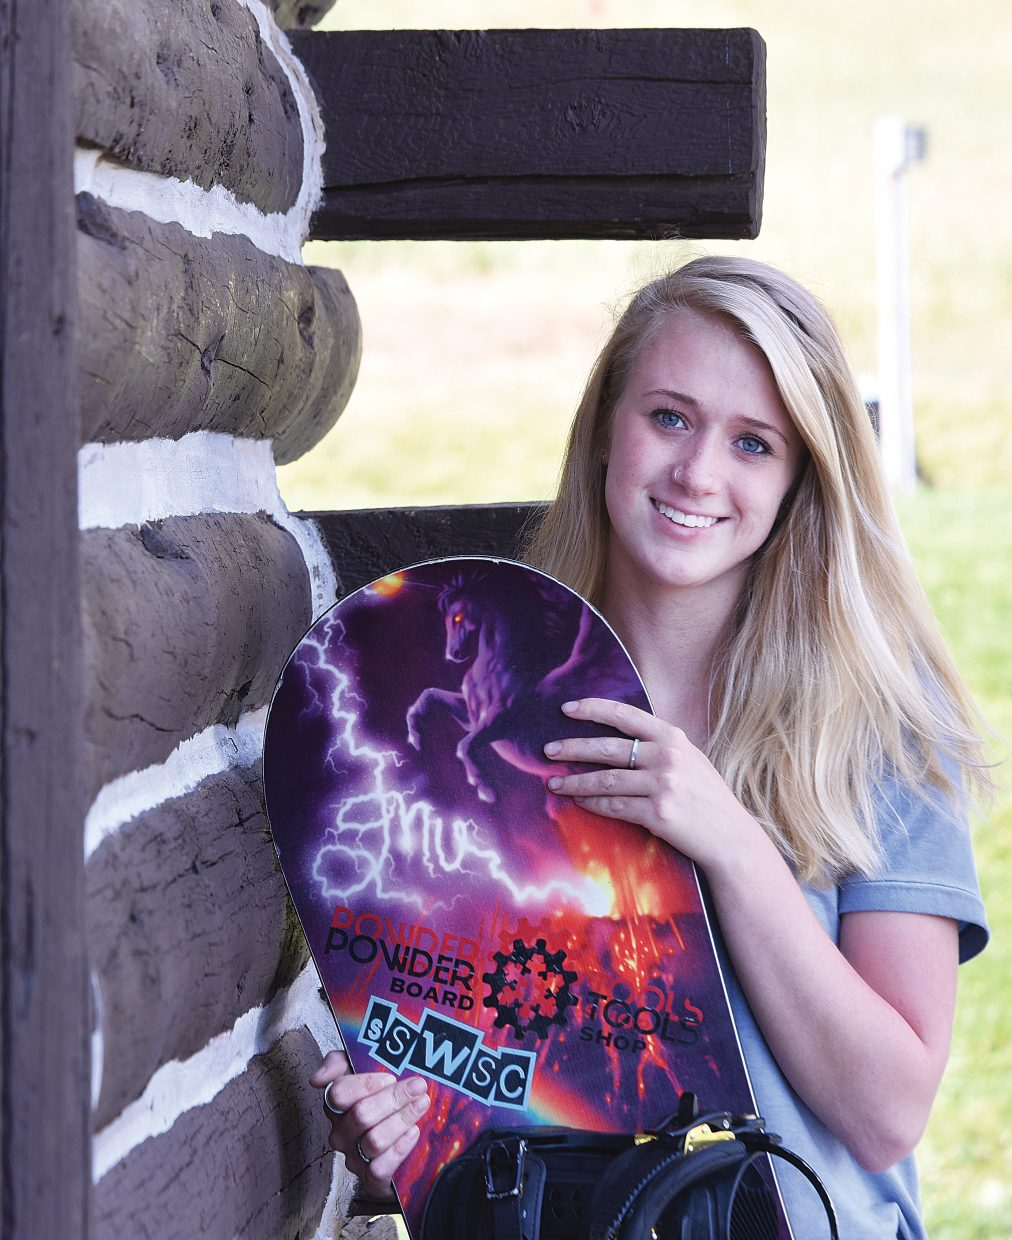 Savanna Atkins is headed to Windells Academy, a private snowboarding school located at the base of Mount Hood in Oregon.